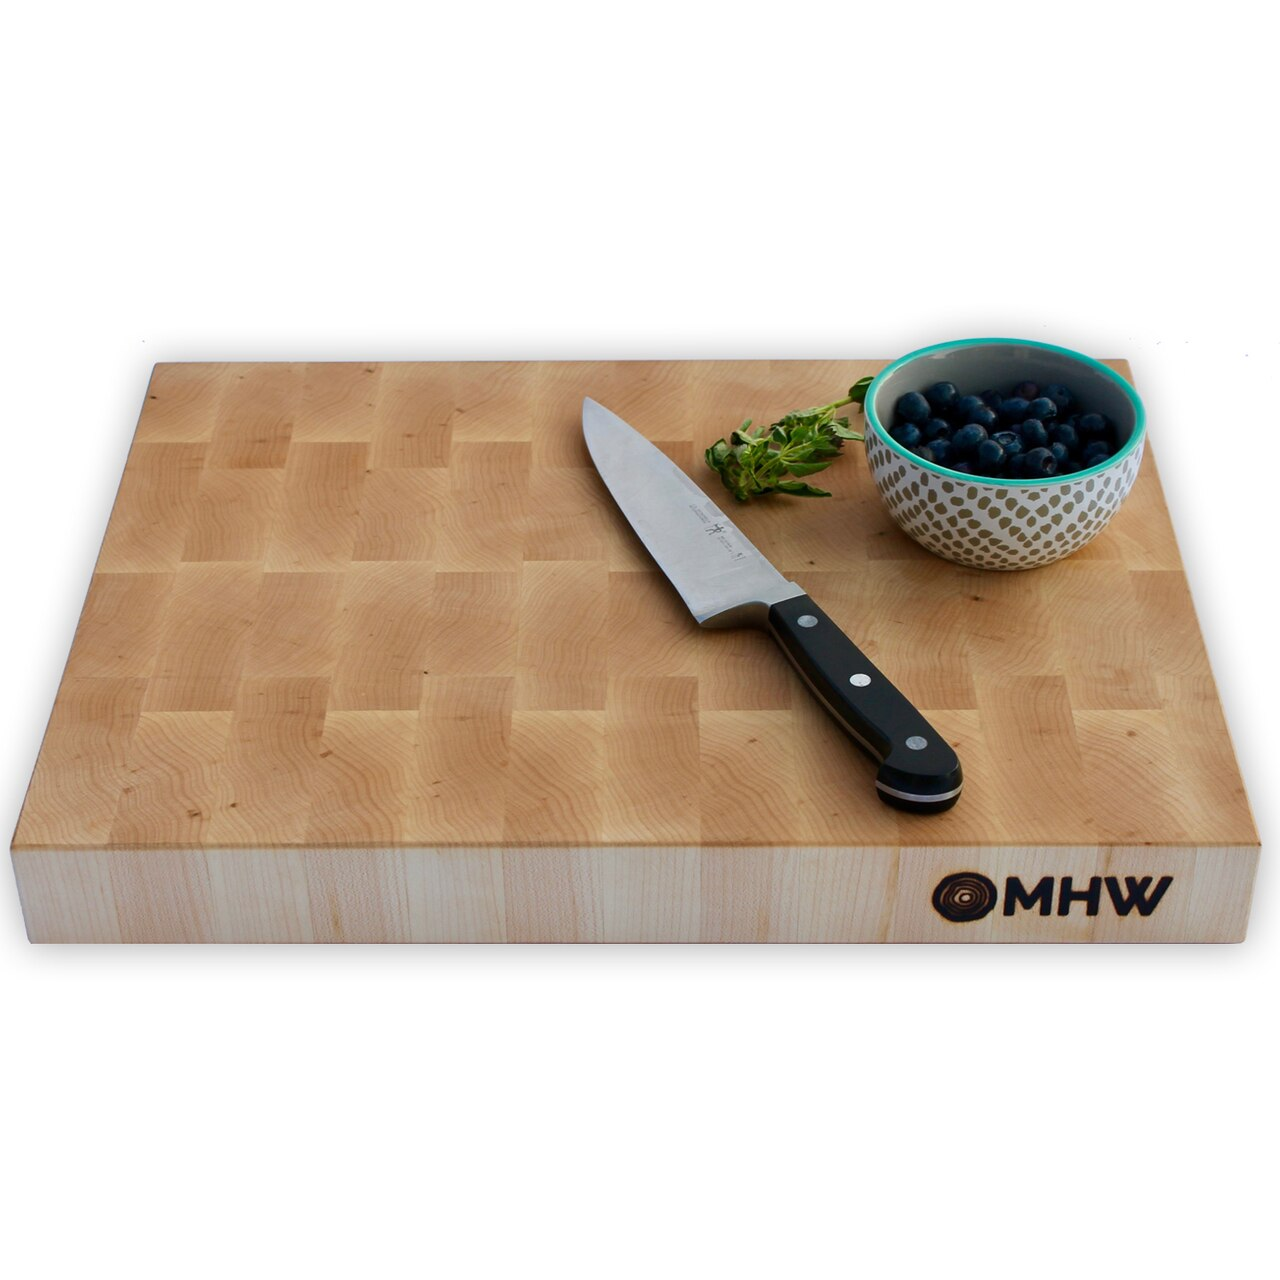 12x20 Maple End Grain Wood Butcher Block - wFREE Board Butter!